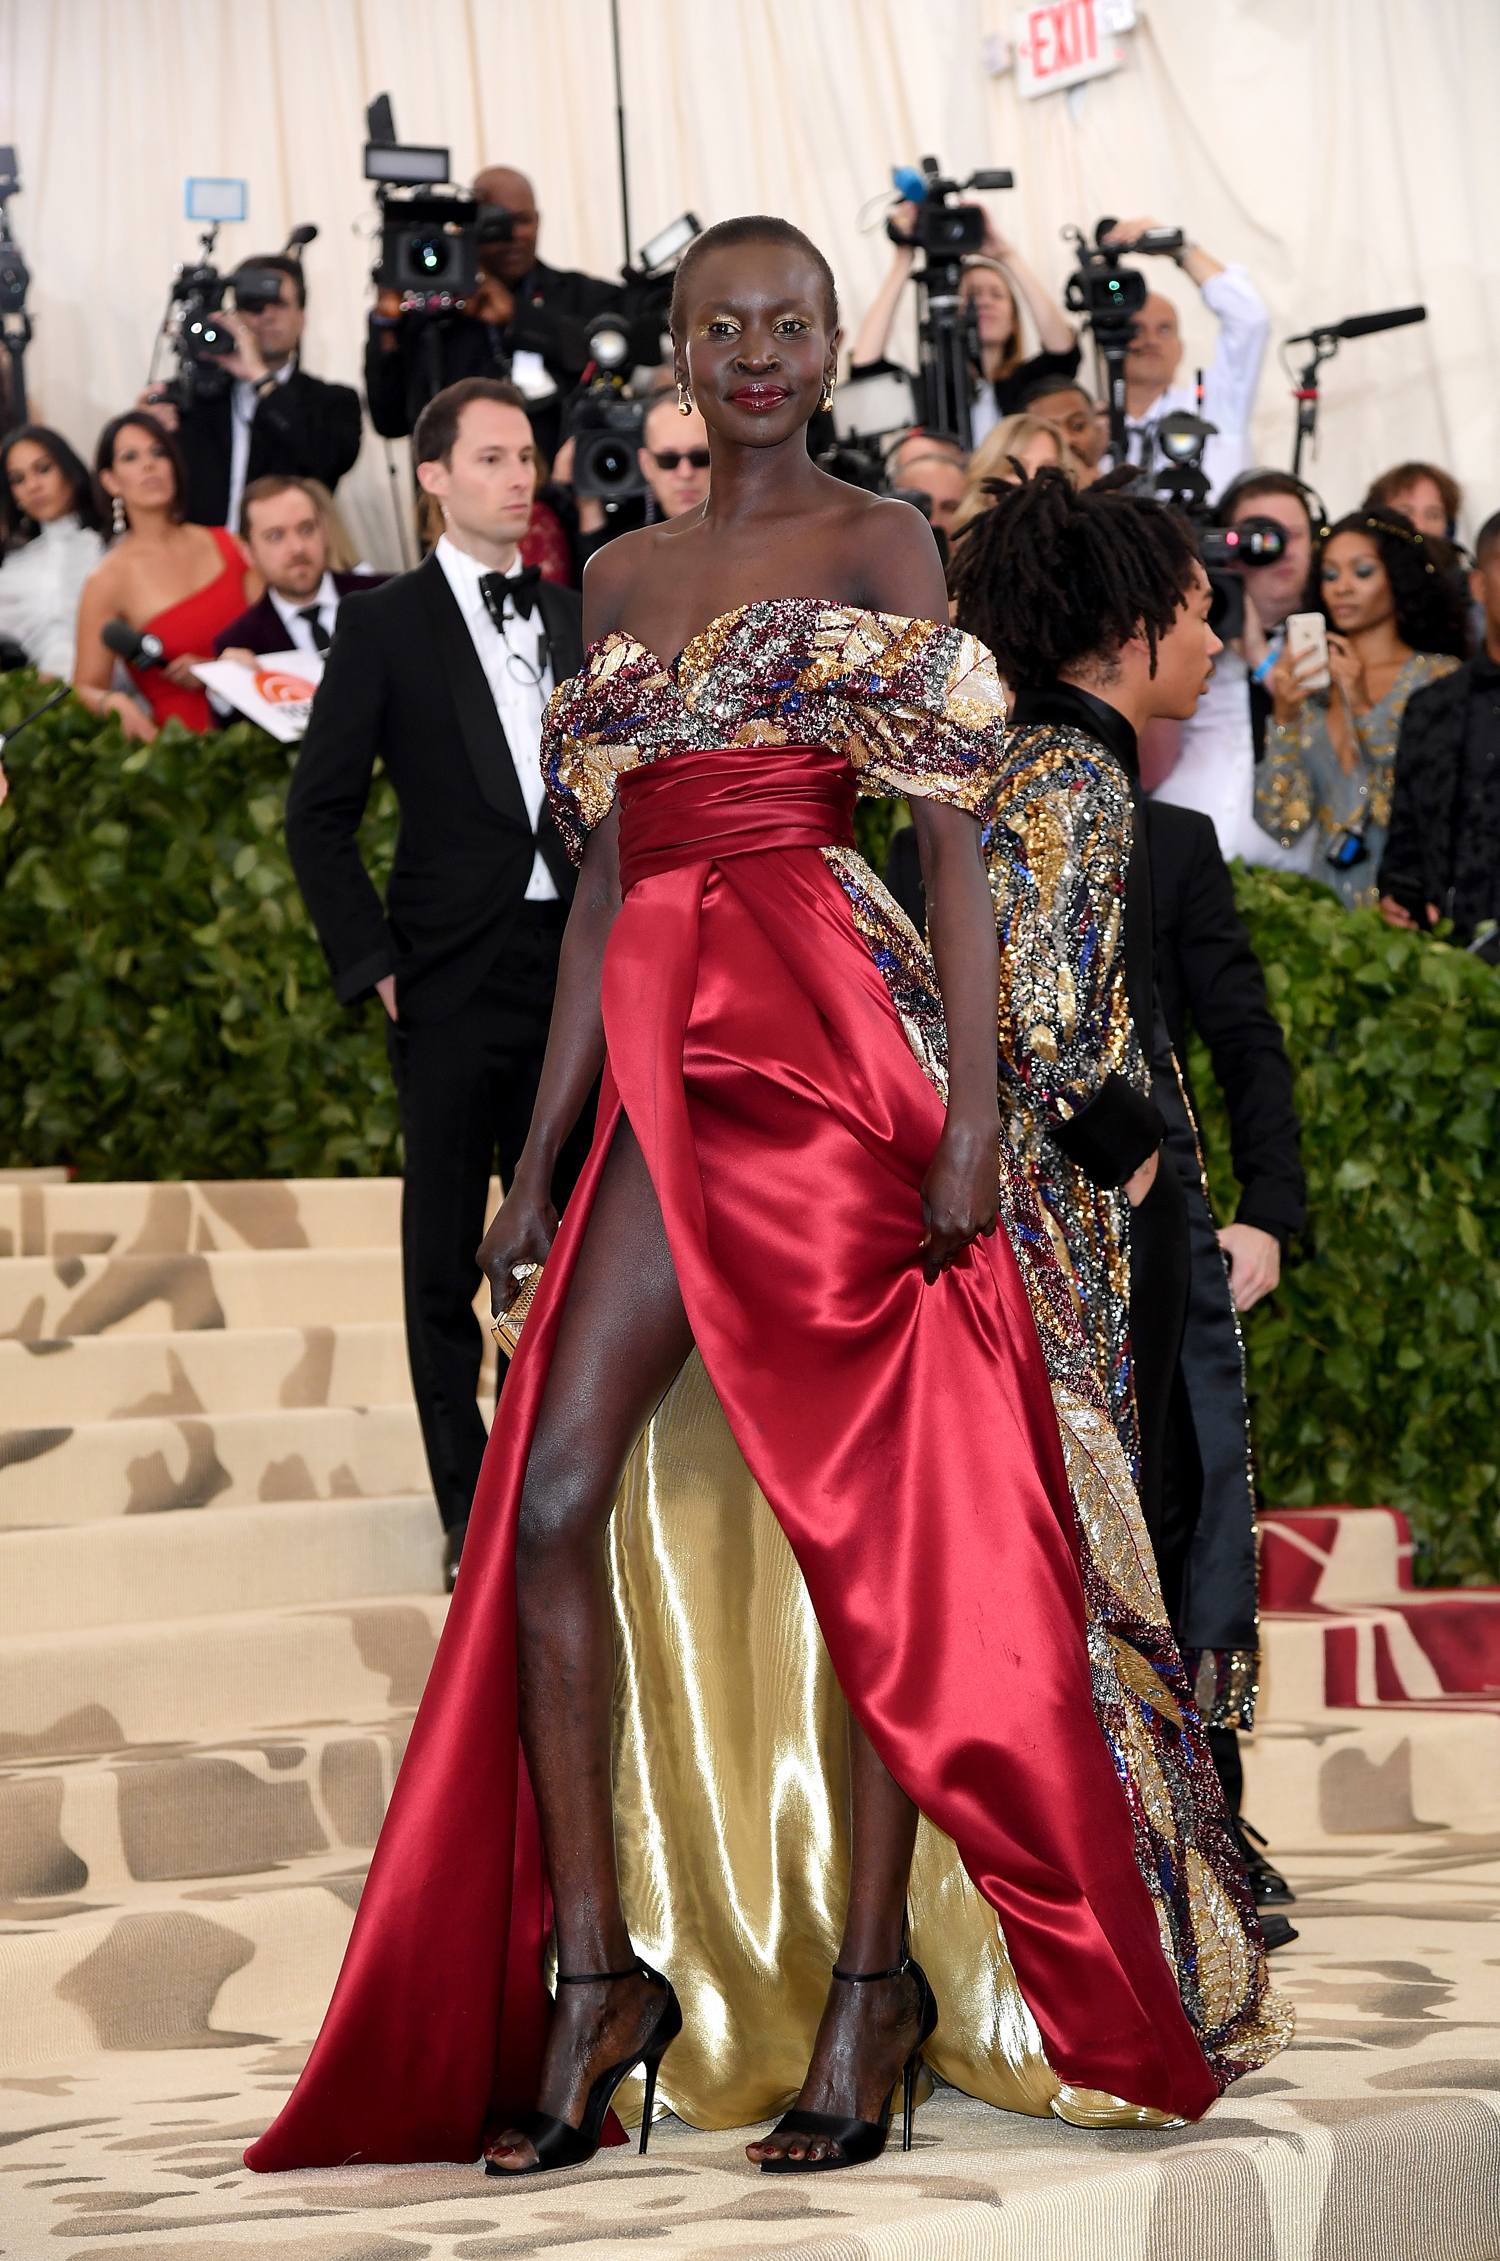 NEW YORK, NY - MAY 07:  Alek Wek attends Heavenly Bodies: Fashion & The Catholic Imagination Costume Institute Gala at the Metropolitan Museum of Art on May 7, 2018 in New York City.  (Photo by Karwai Tang/Karwai Tang/Getty Images)